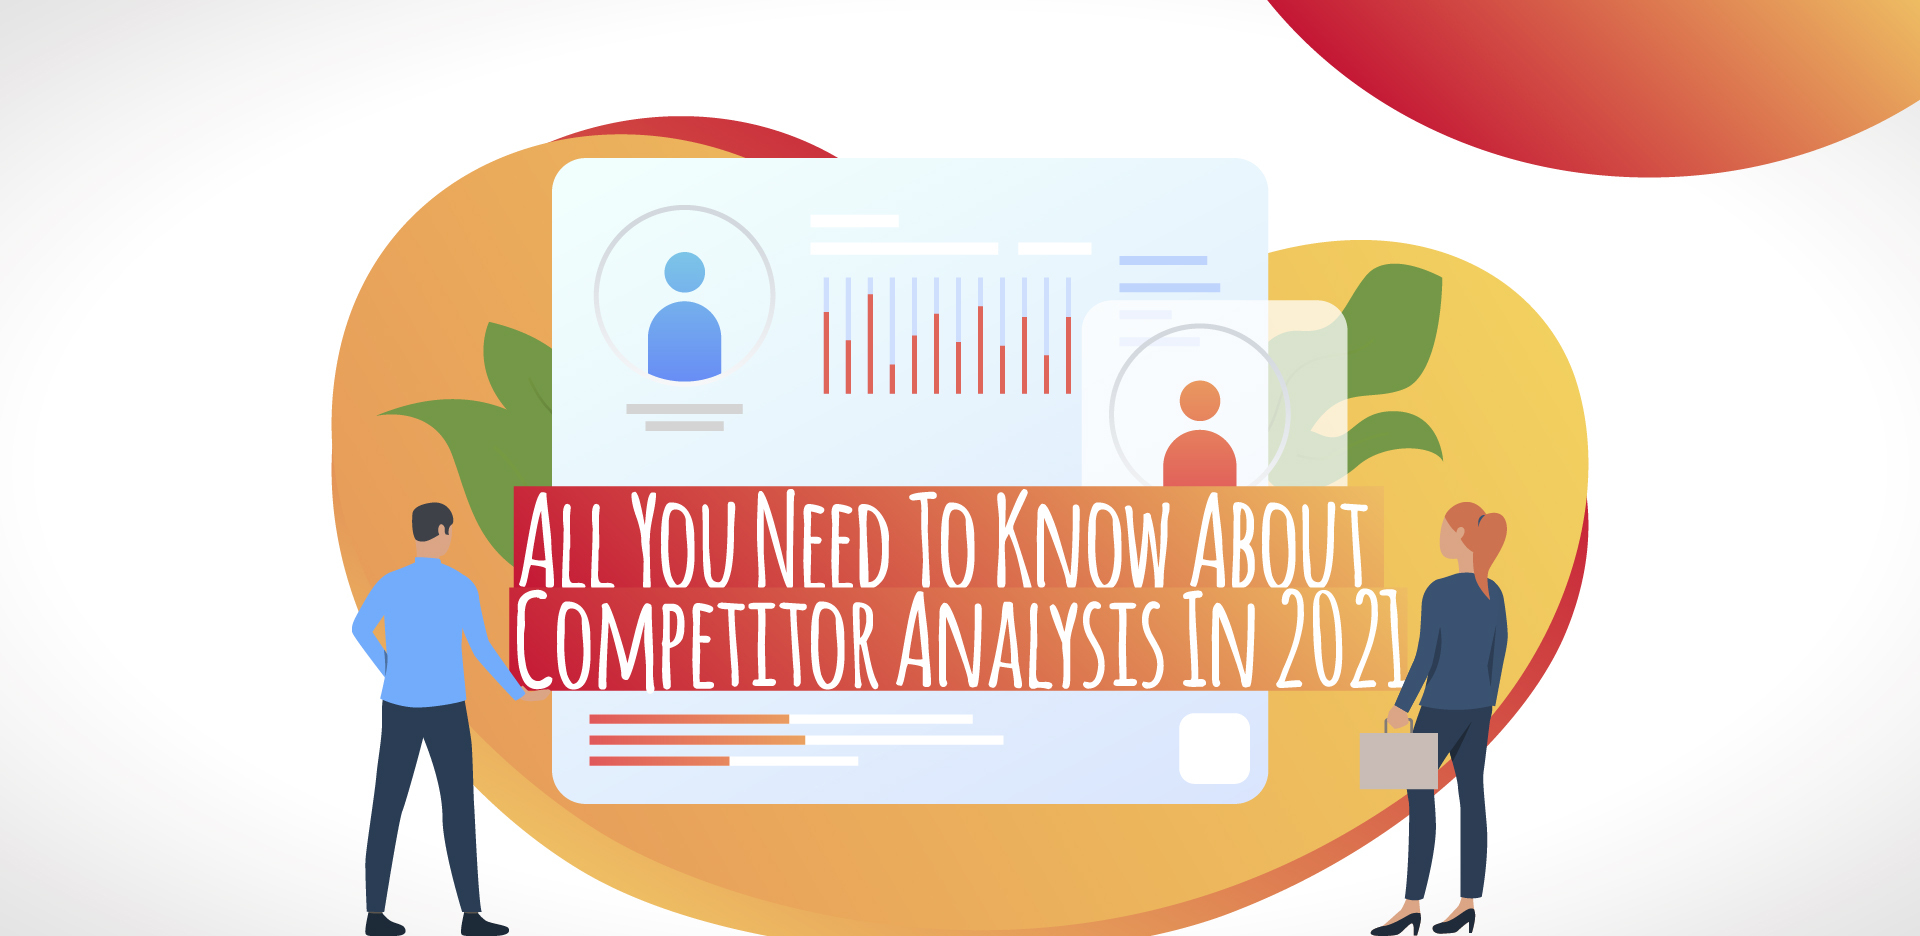 All You Need To Know About Competitor Analysis In 2021